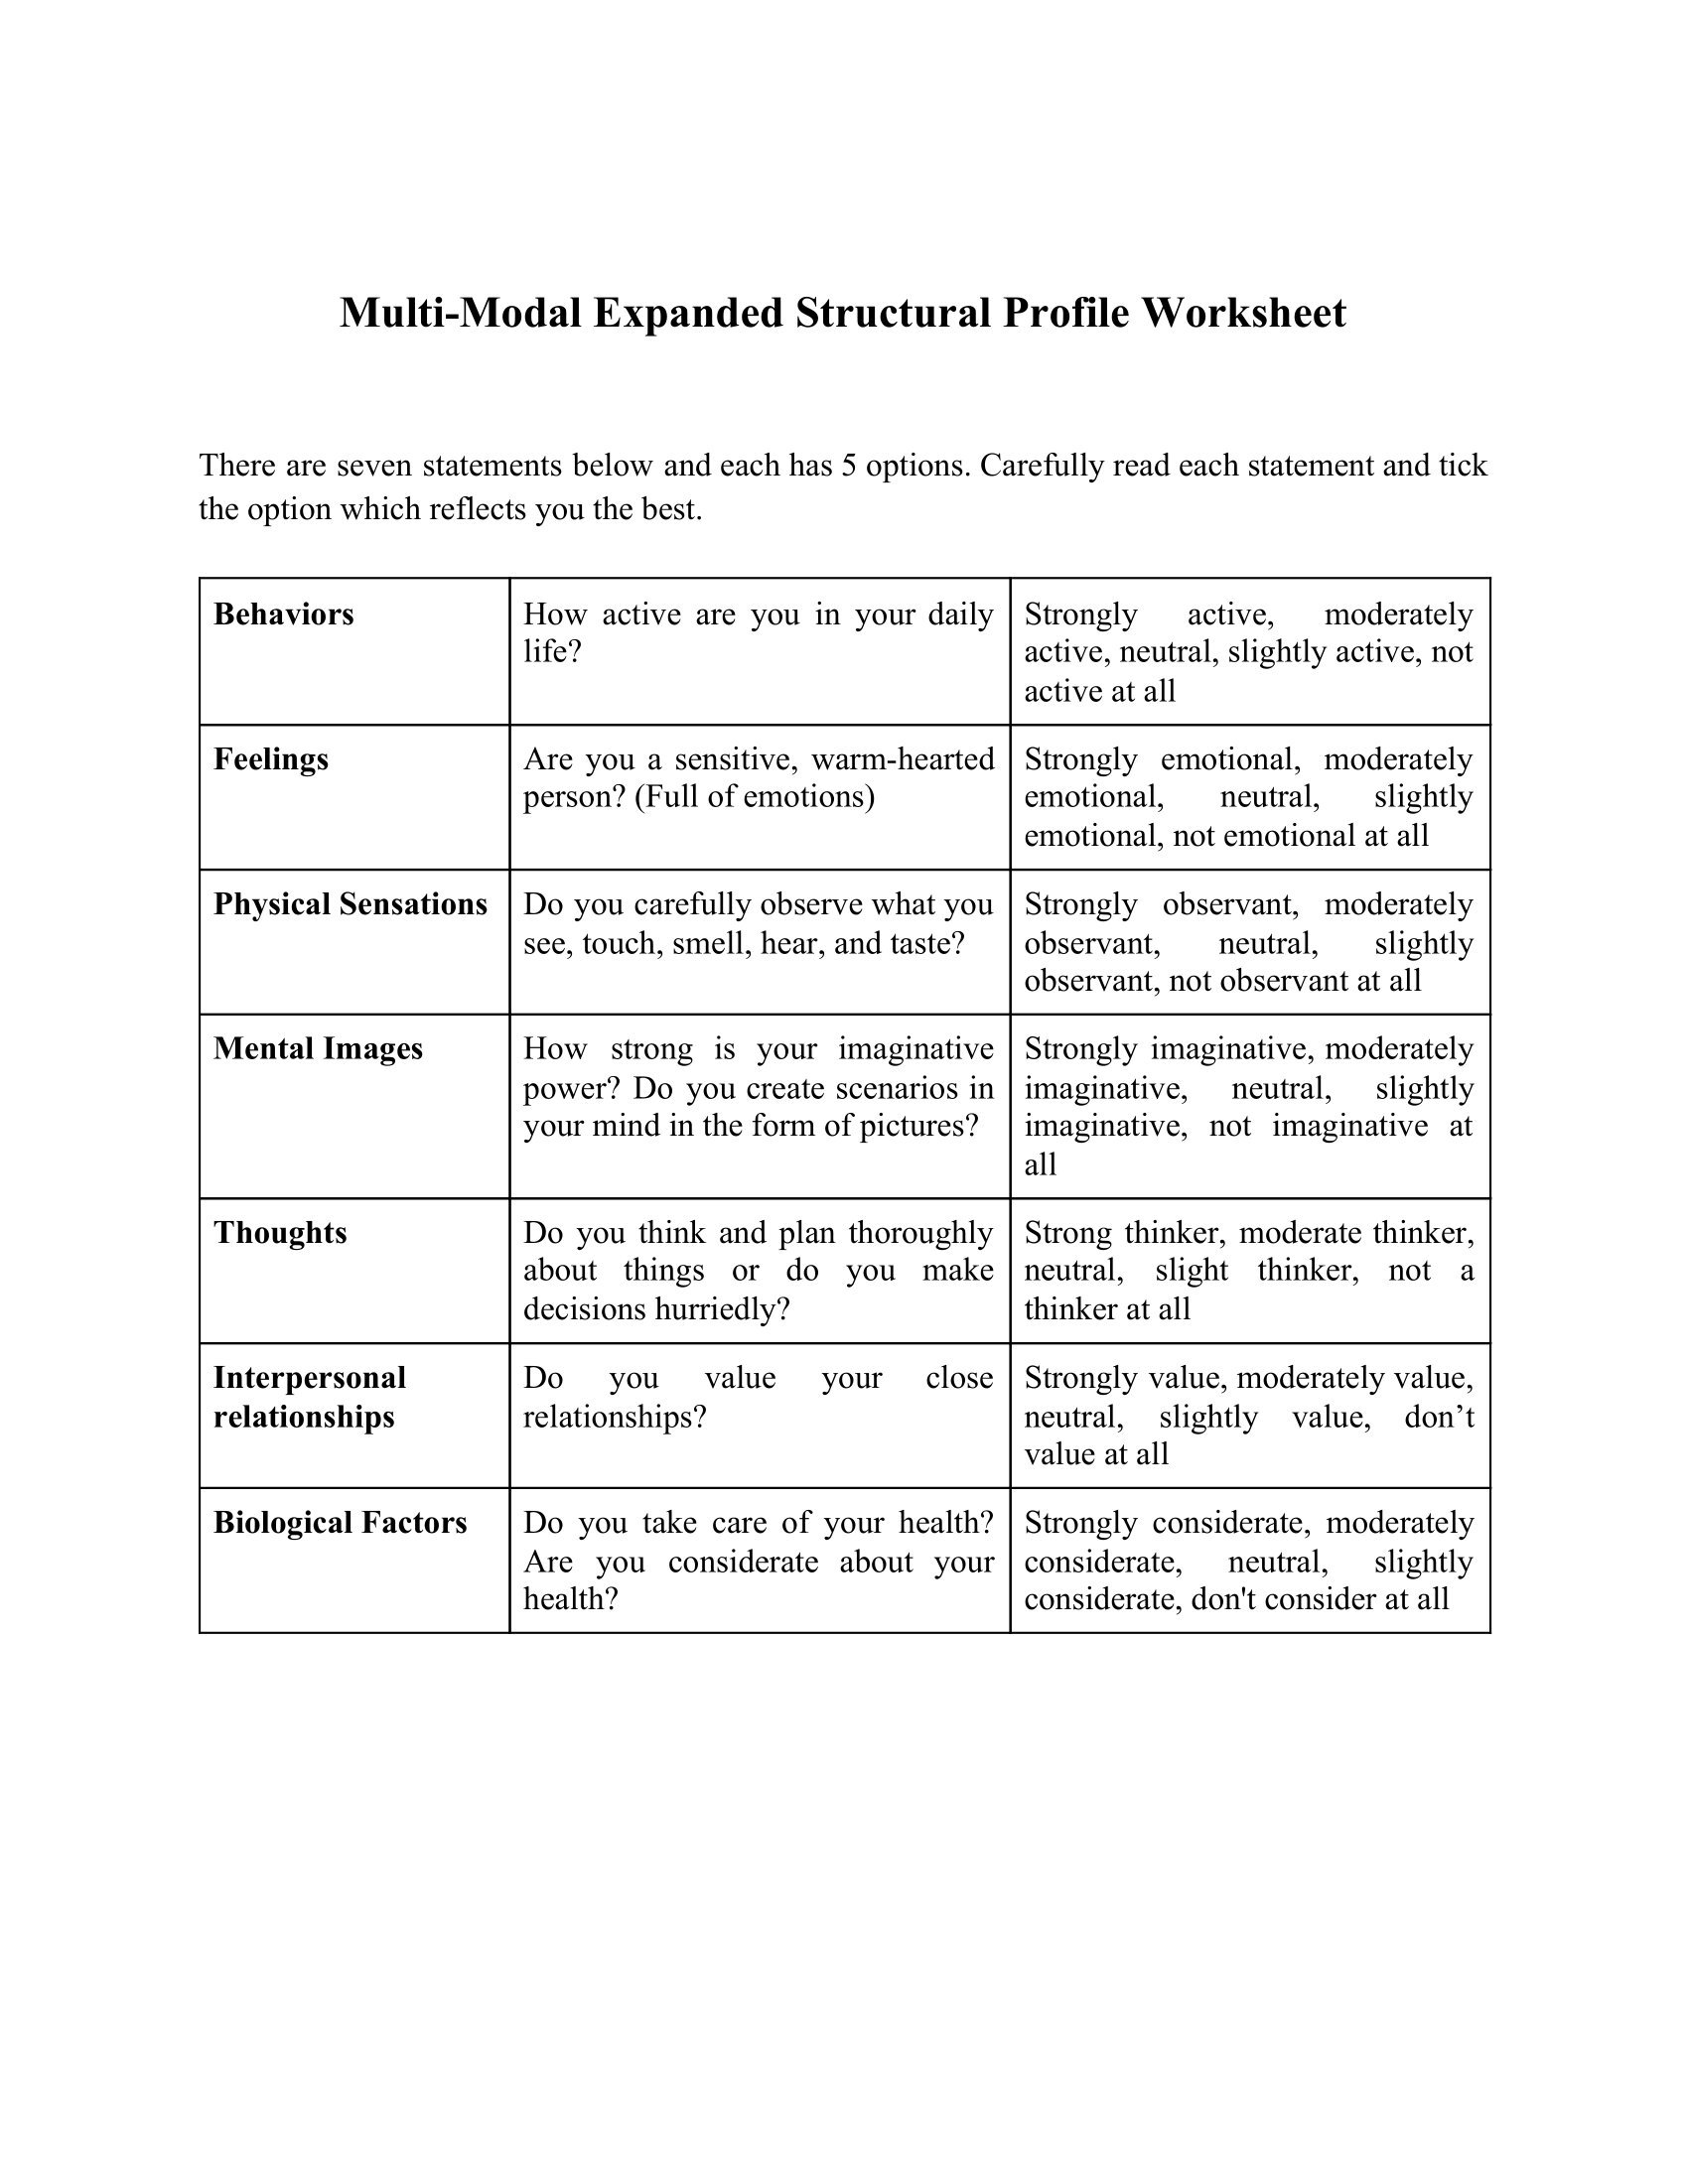 Multi-Modal Expanded Structural Profile Worksheet